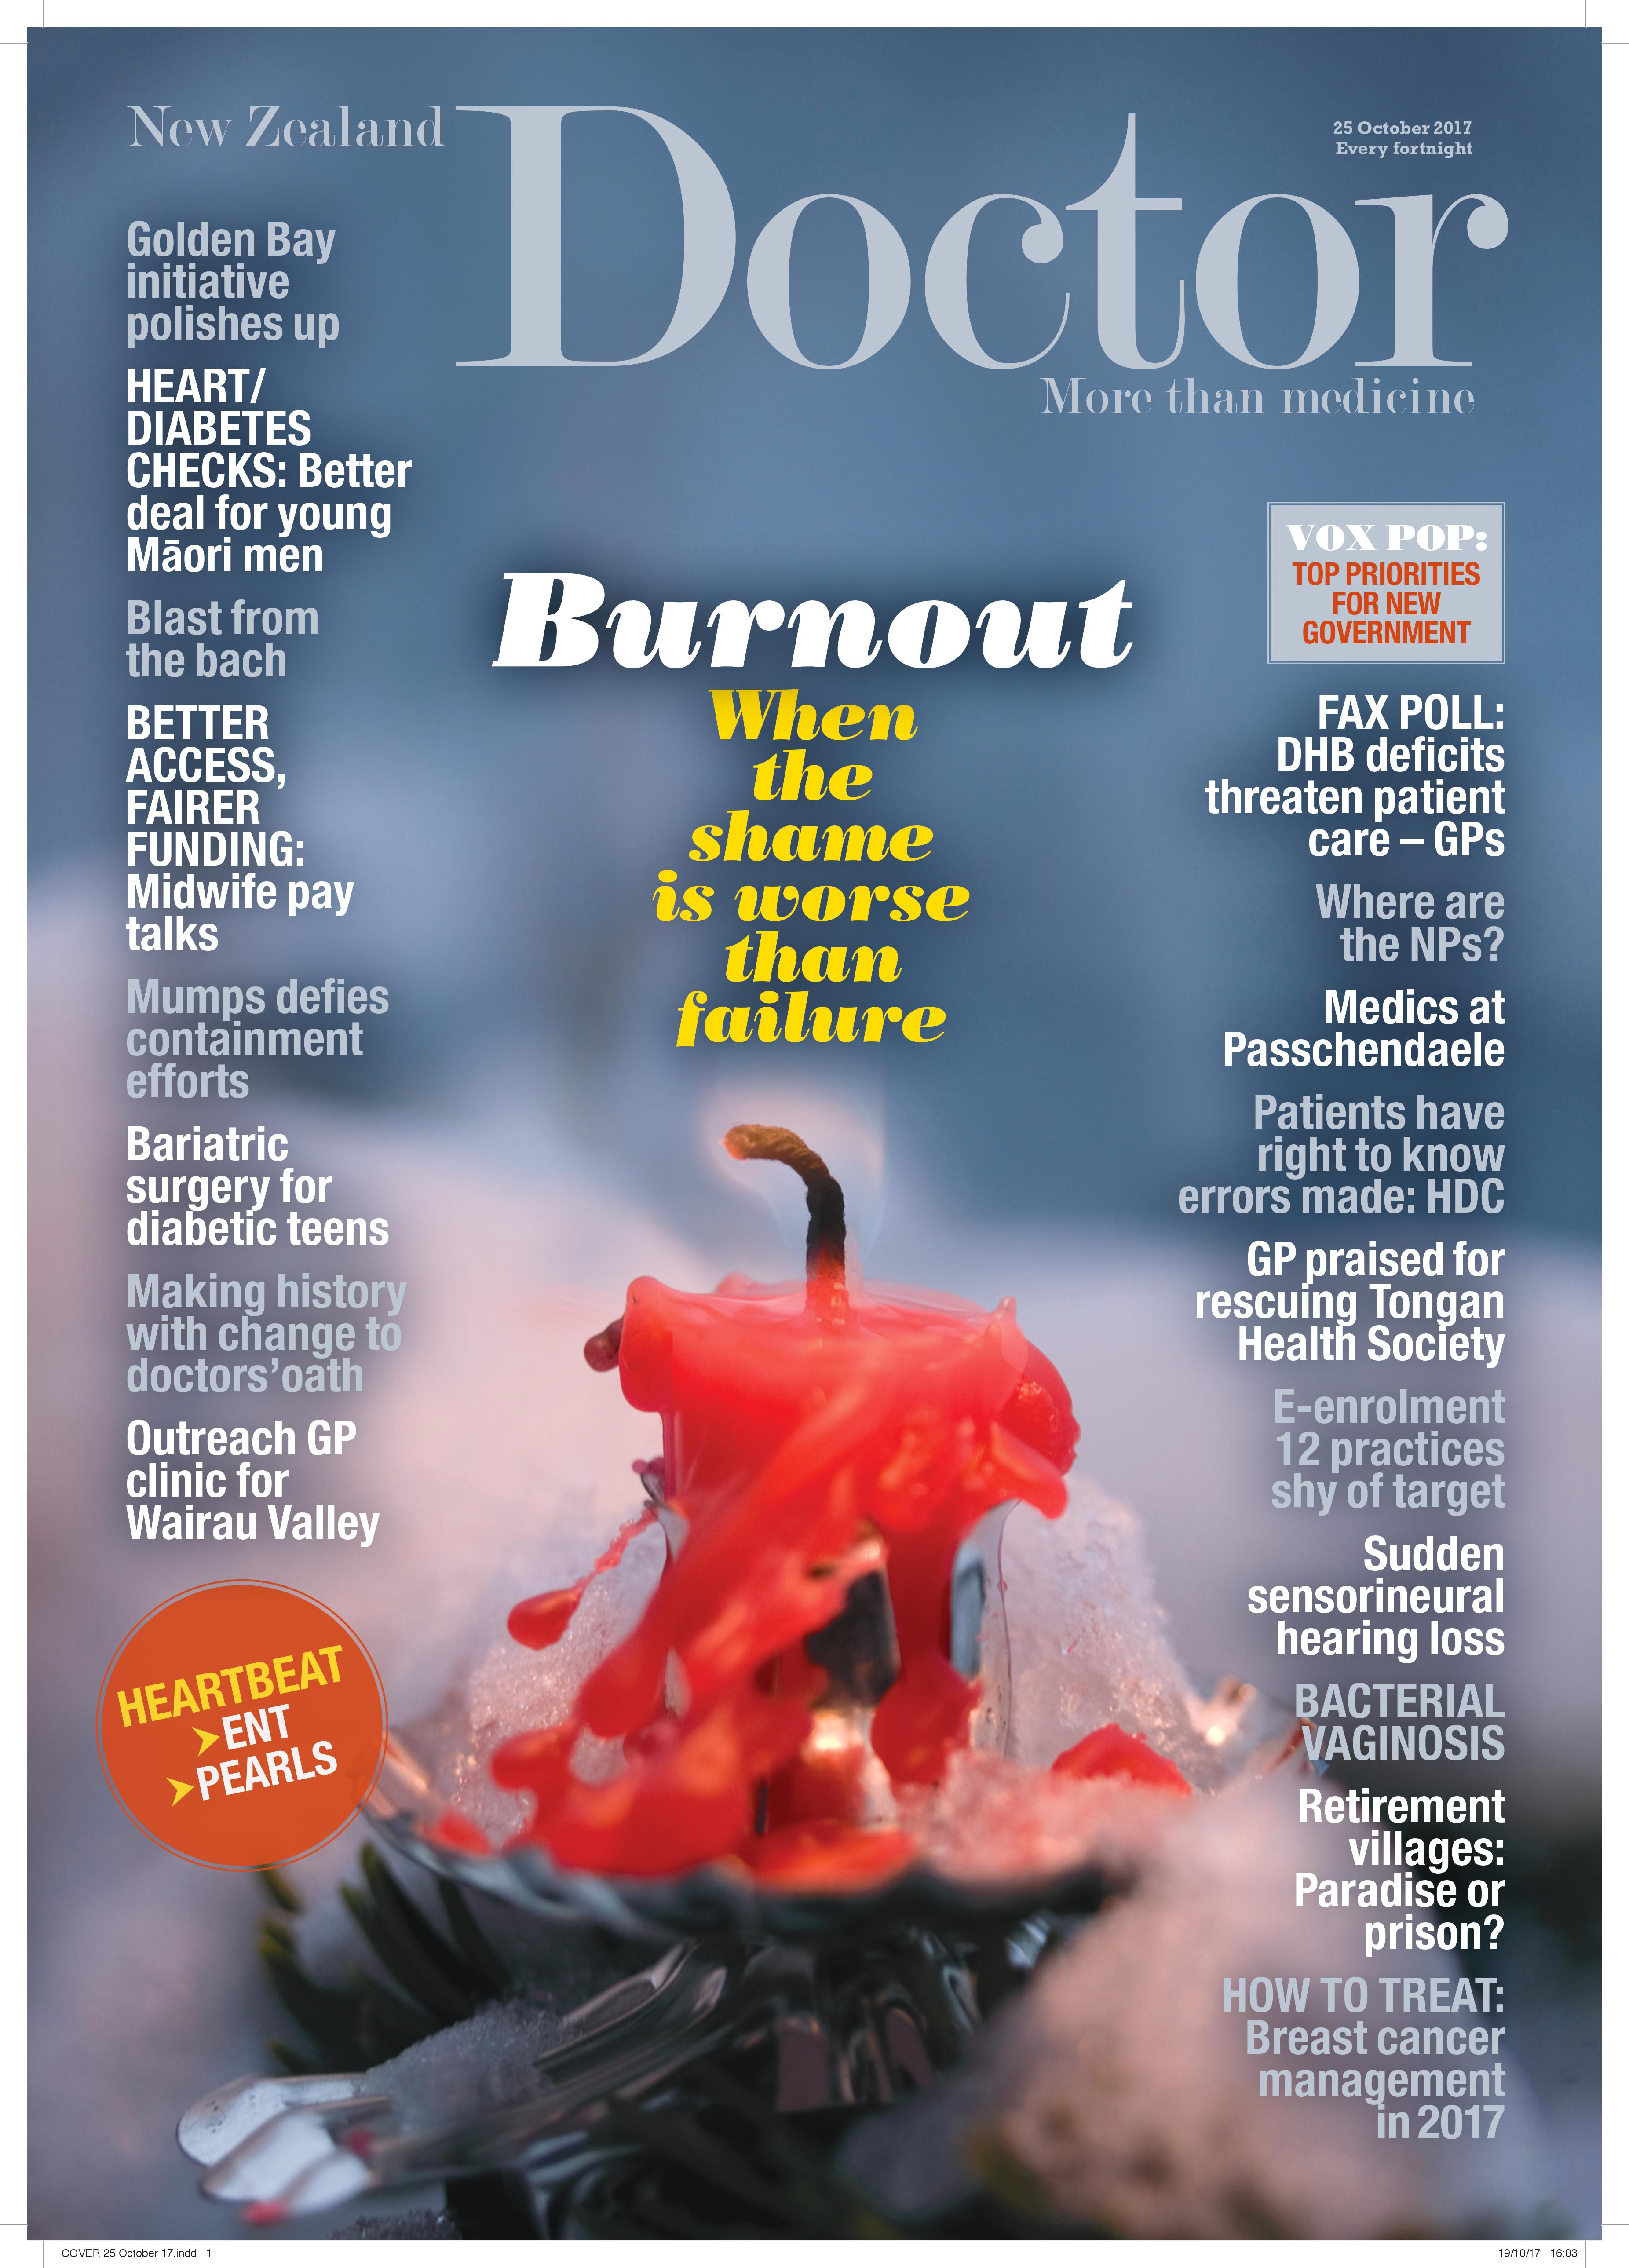 25 October 2017 cover